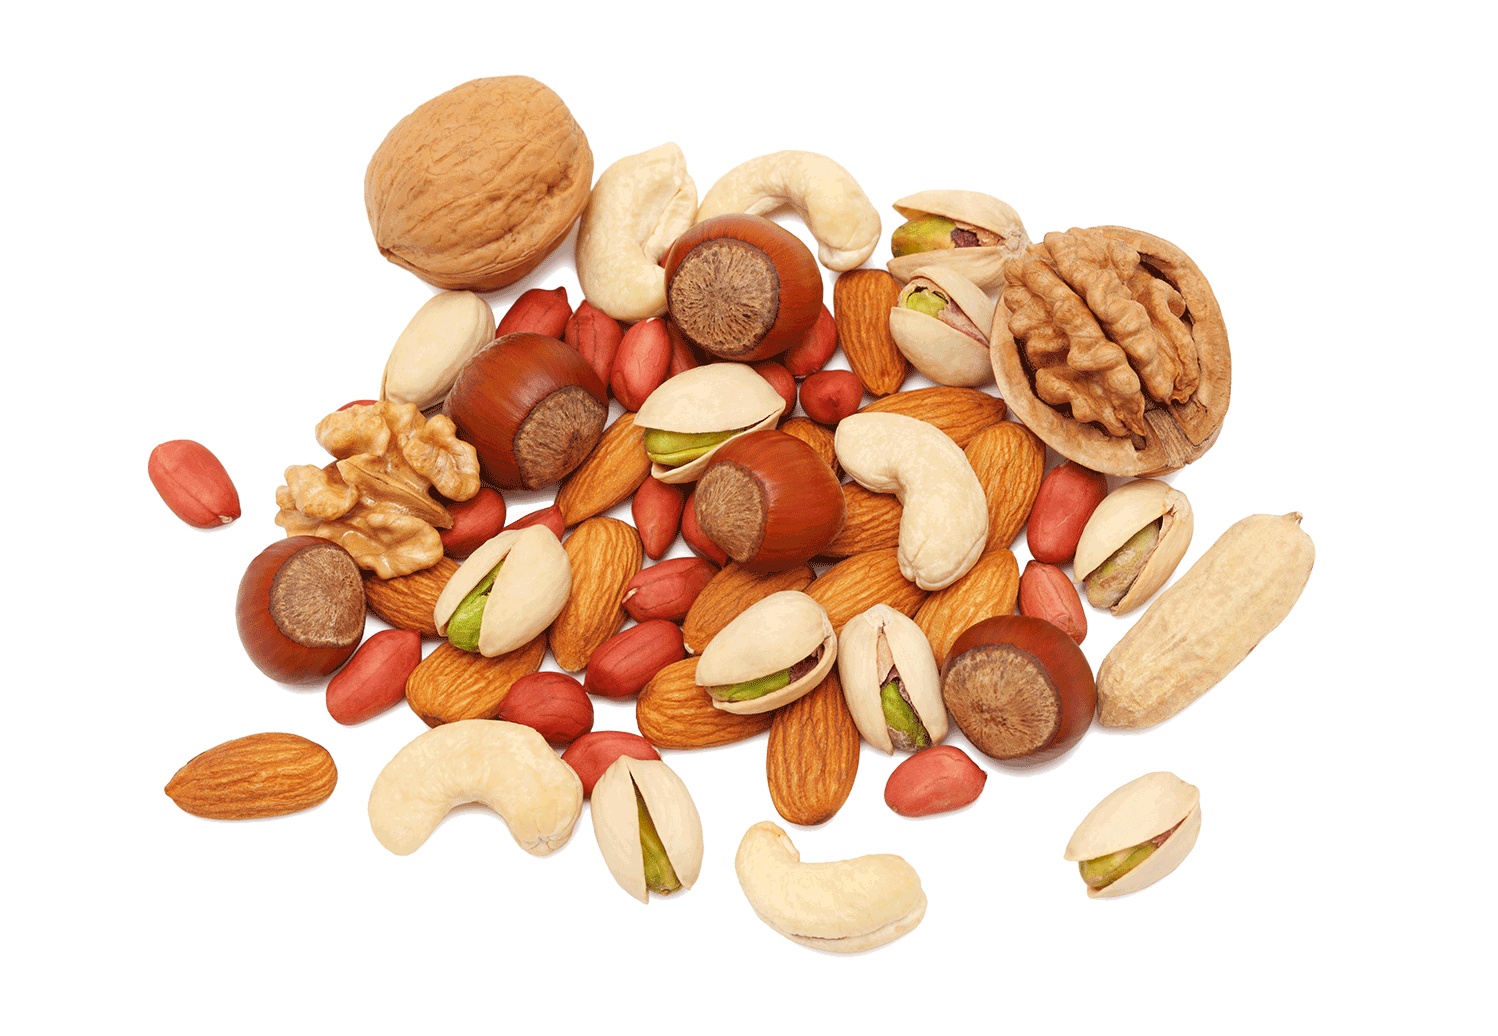 Mixed nuts clipart image free download Mixed nuts clipart clipart images gallery for free download ... image free download